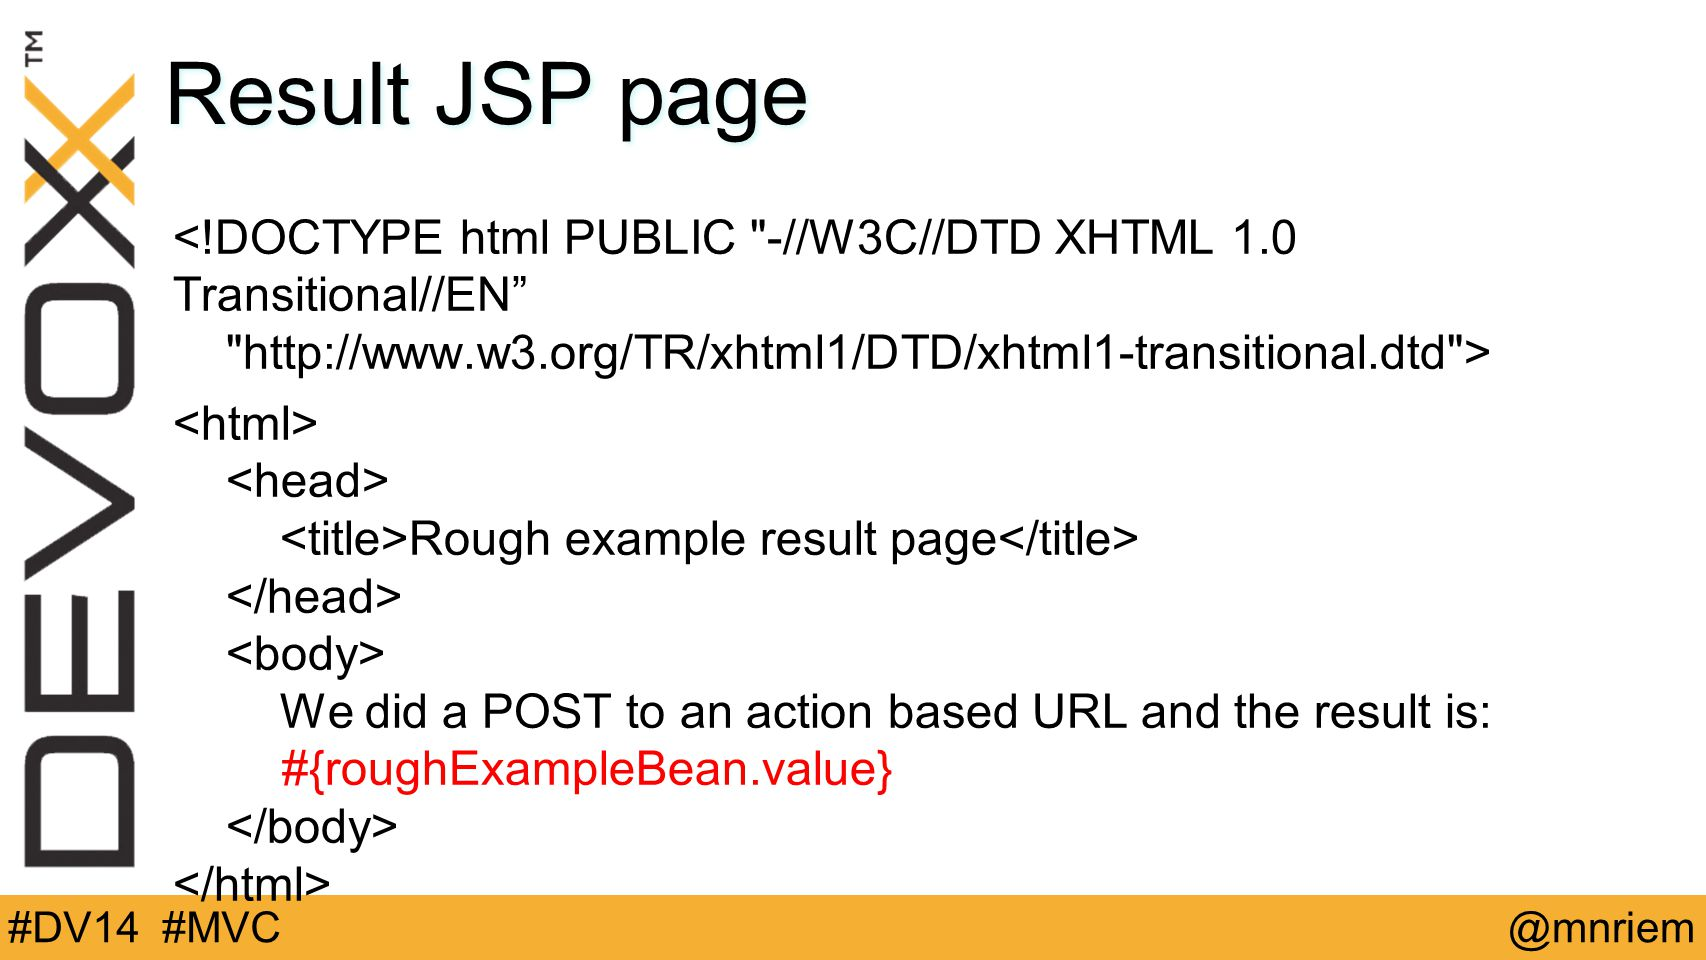 @mnriem#DV14 #MVC Result JSP page Rough example result page We did a POST to an action based URL and the result is: #{roughExampleBean.value}